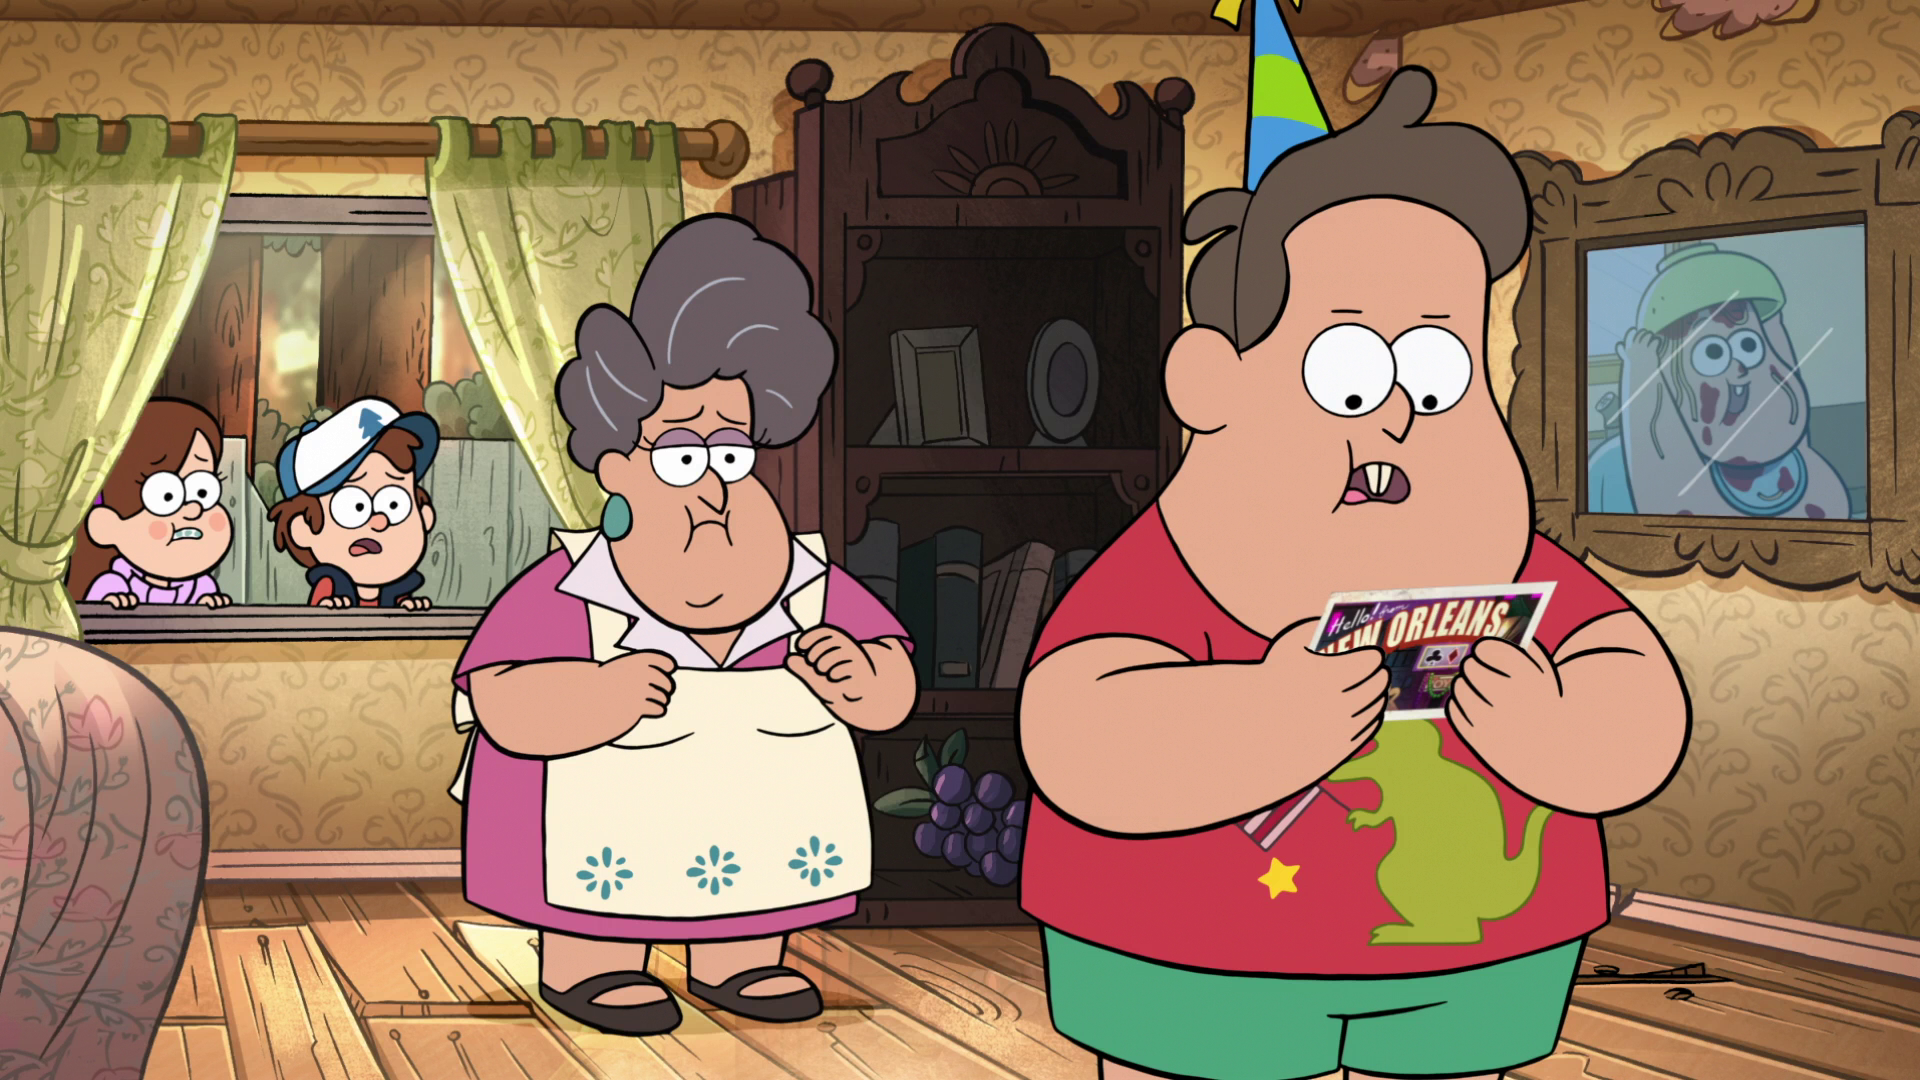 Gravity falls waddles pigged out